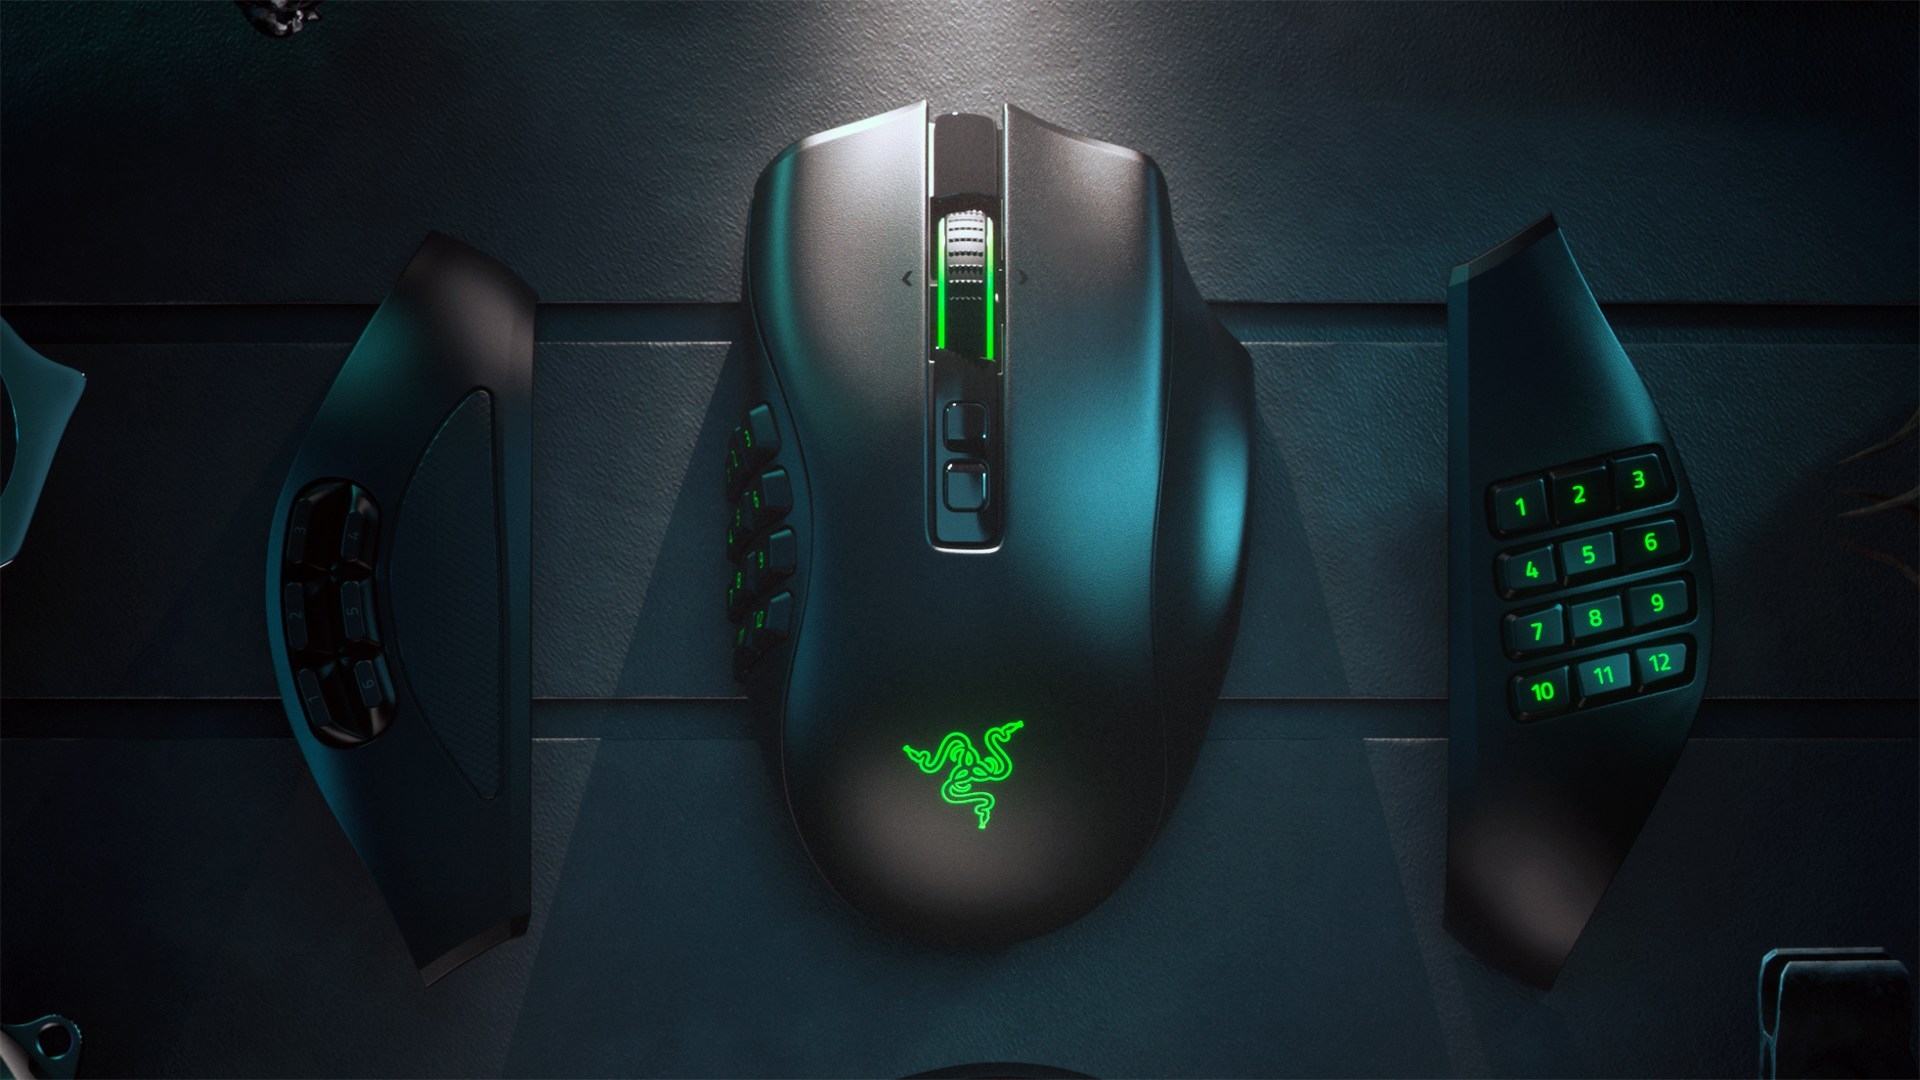 Gaming, Spiele, Games, Shooter, Mmorpg, Mmo, Maus, Razer, kabellos, Wireless, modular, MOBA, FPS, Optischer Sensor, Seitenteile, Razer Naga Pro, Gaming-Mouse, 3-in-1